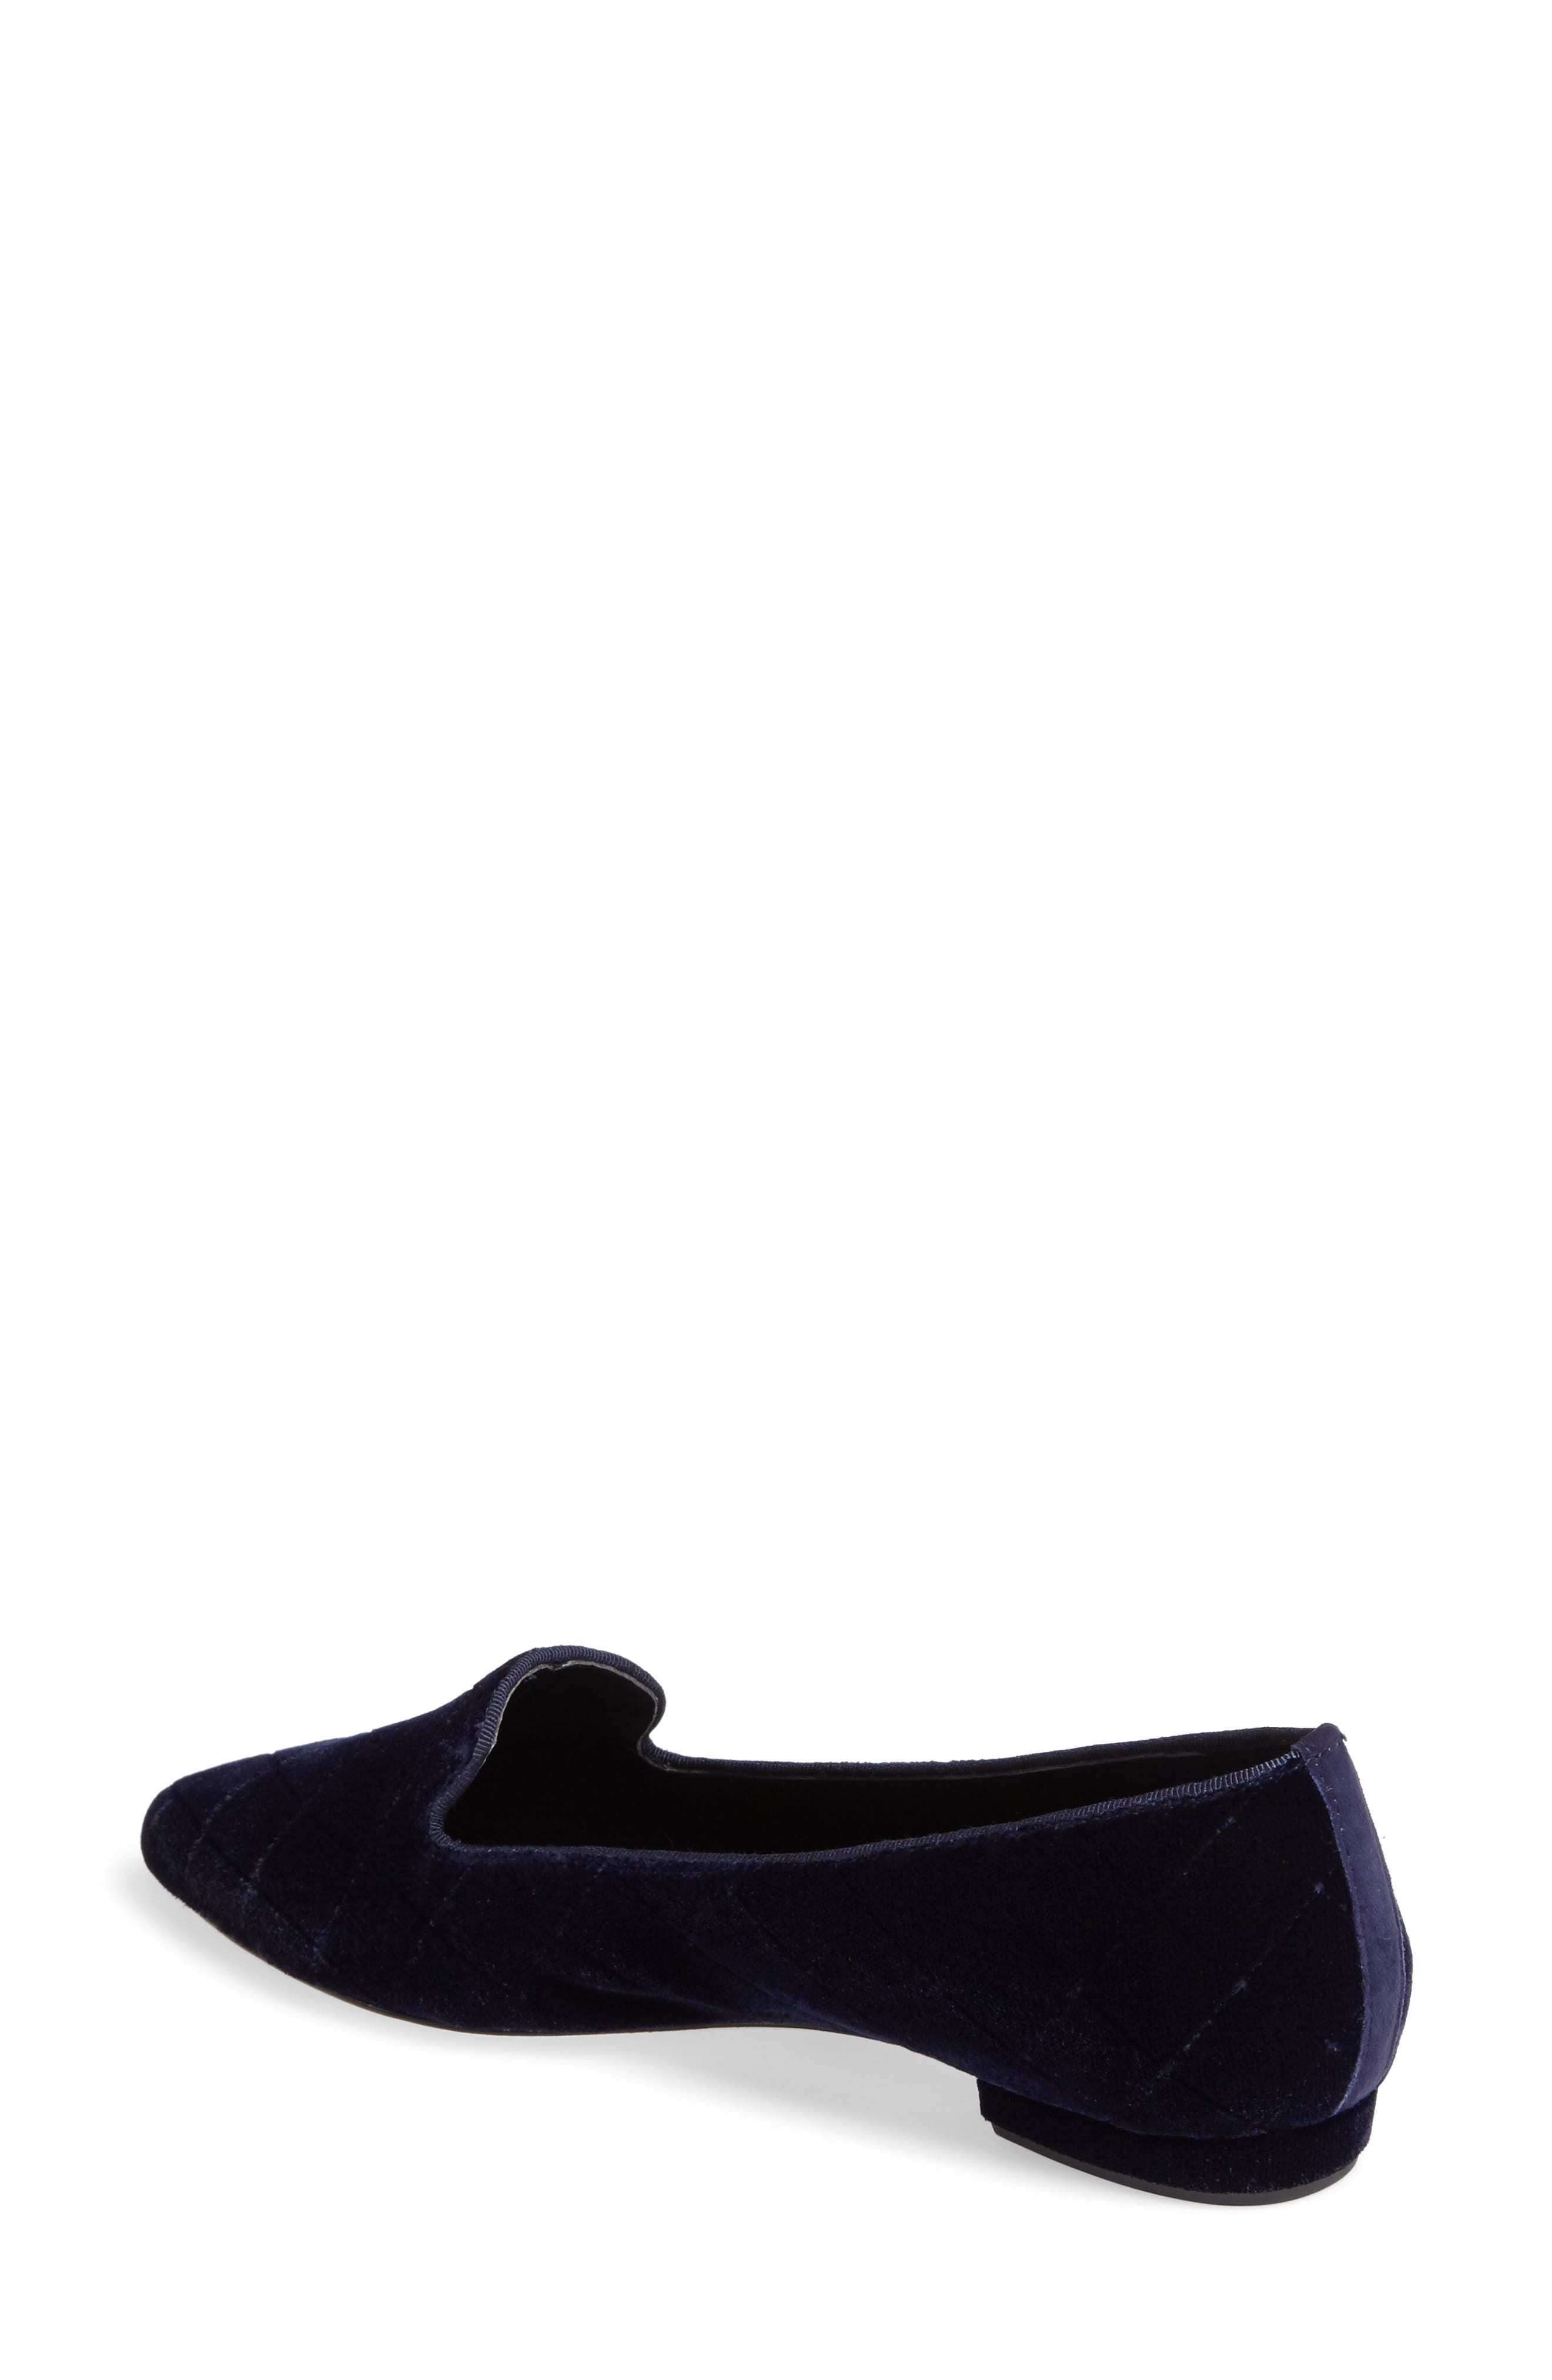 Gannie Diamond Pattern Loafer,                             Alternate thumbnail 5, color,